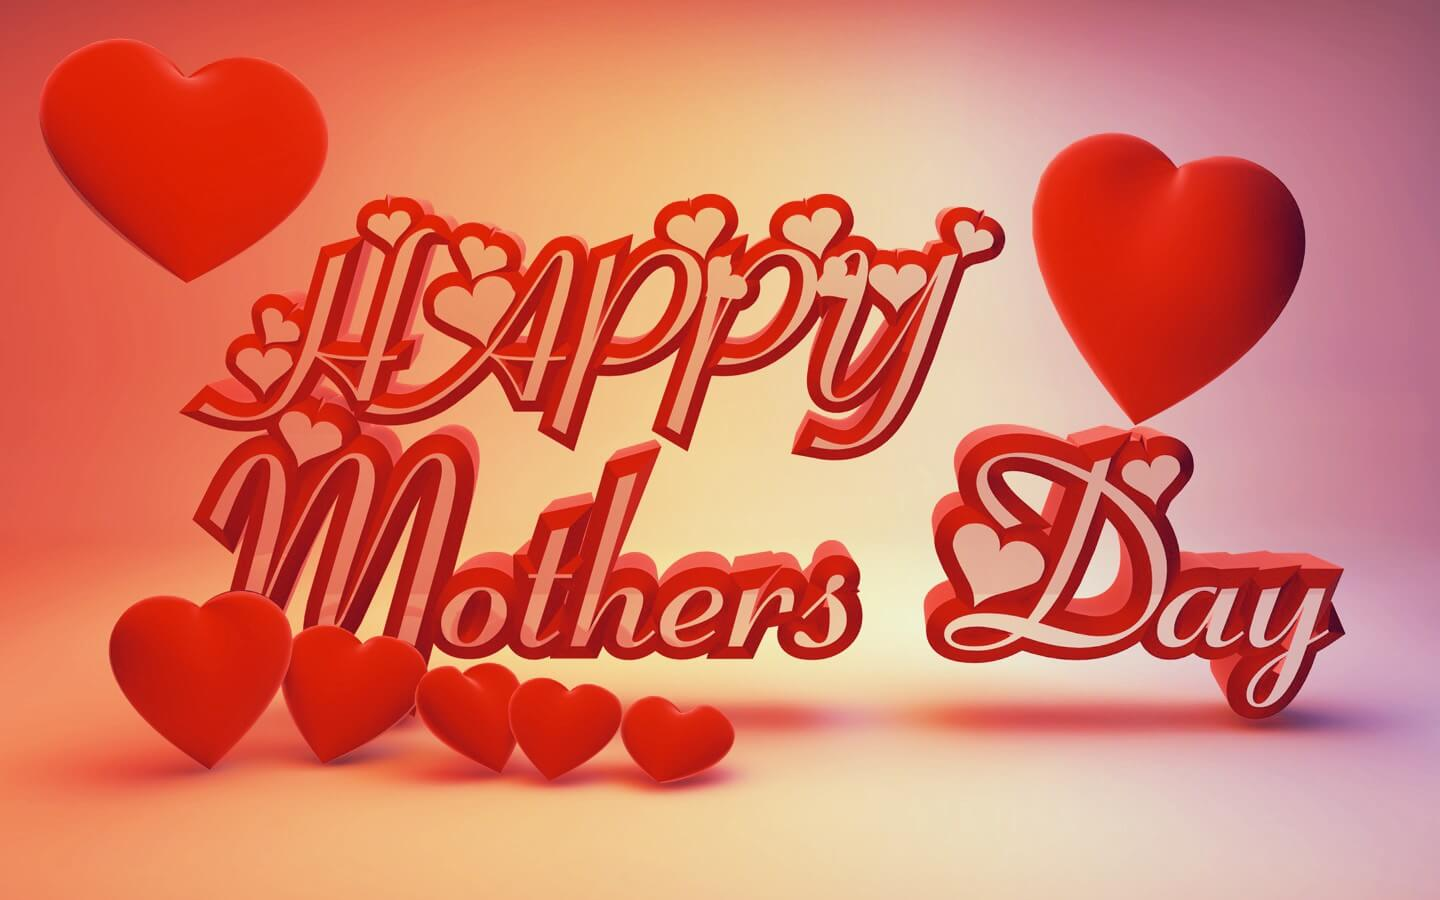 happy mothers day wishes hearts greeting card hd wallpaper